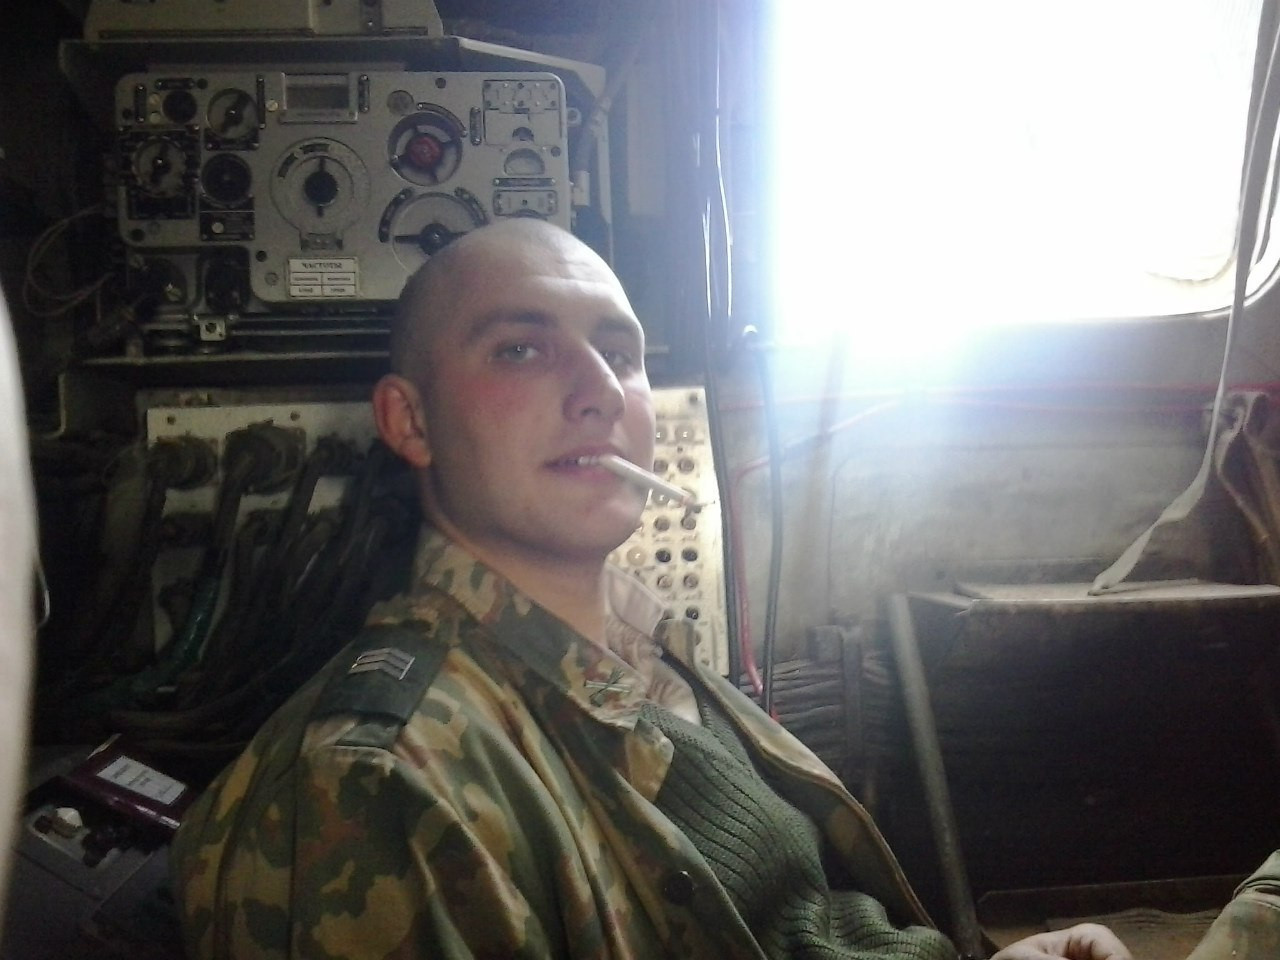 Krasnoproshin inside one of the unit's vehicles. The chevrons indicate that he is a sergeant. [Source]